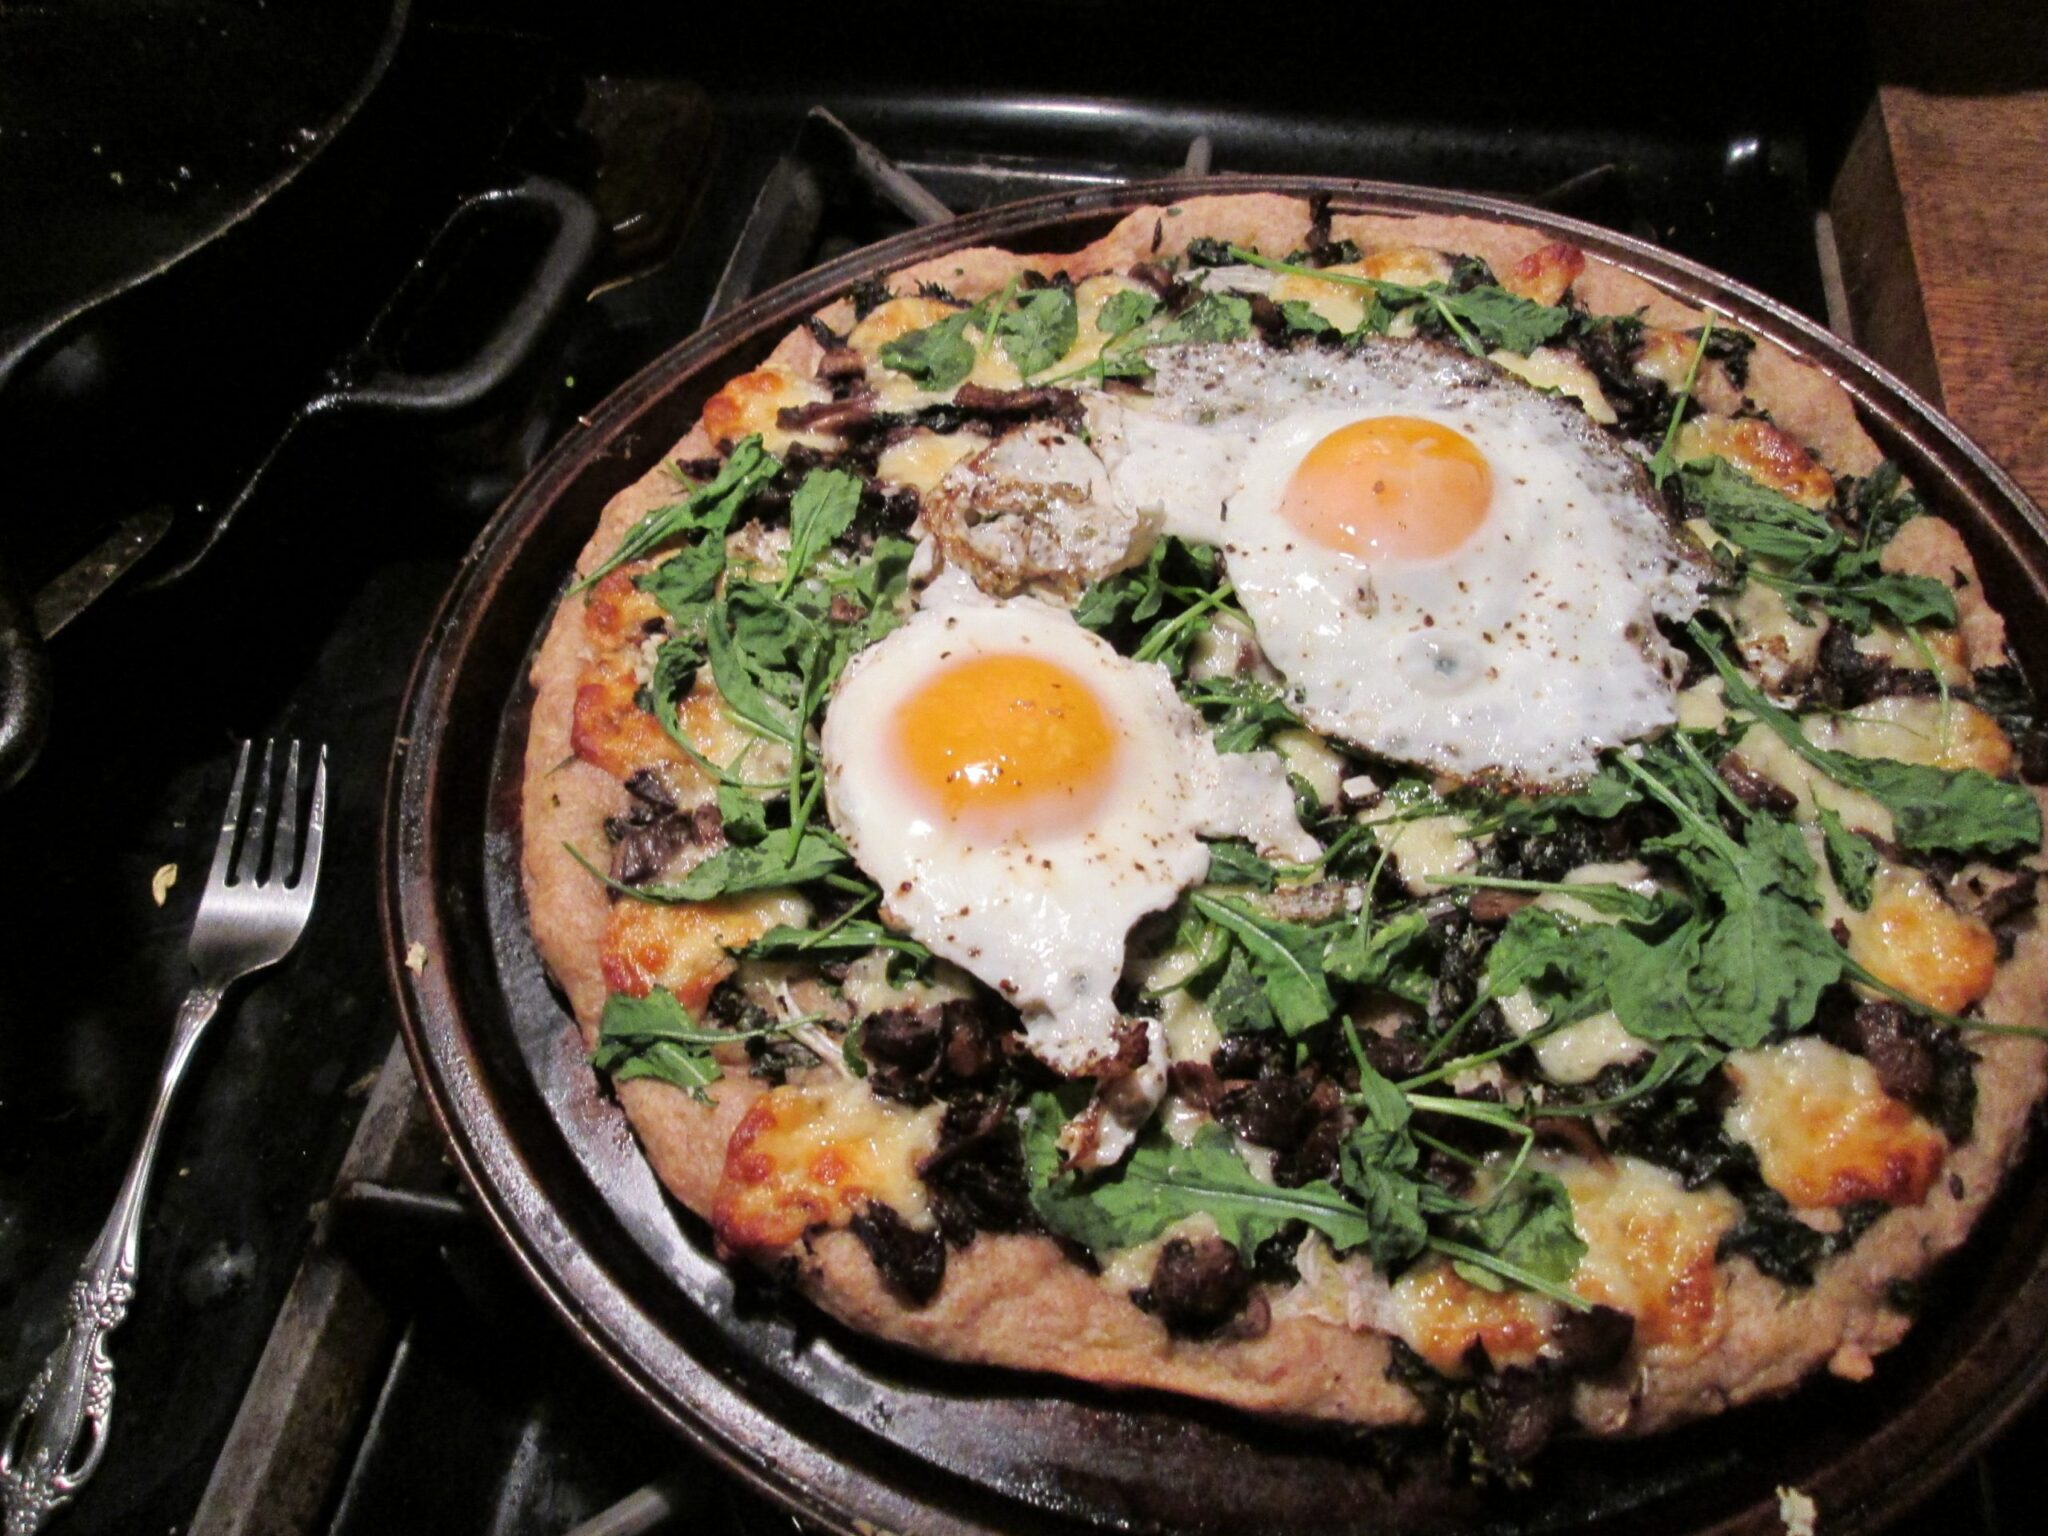 Two-egg pizza, with arugula and oyster mushrooms and a multi-grain crust.  Nom!